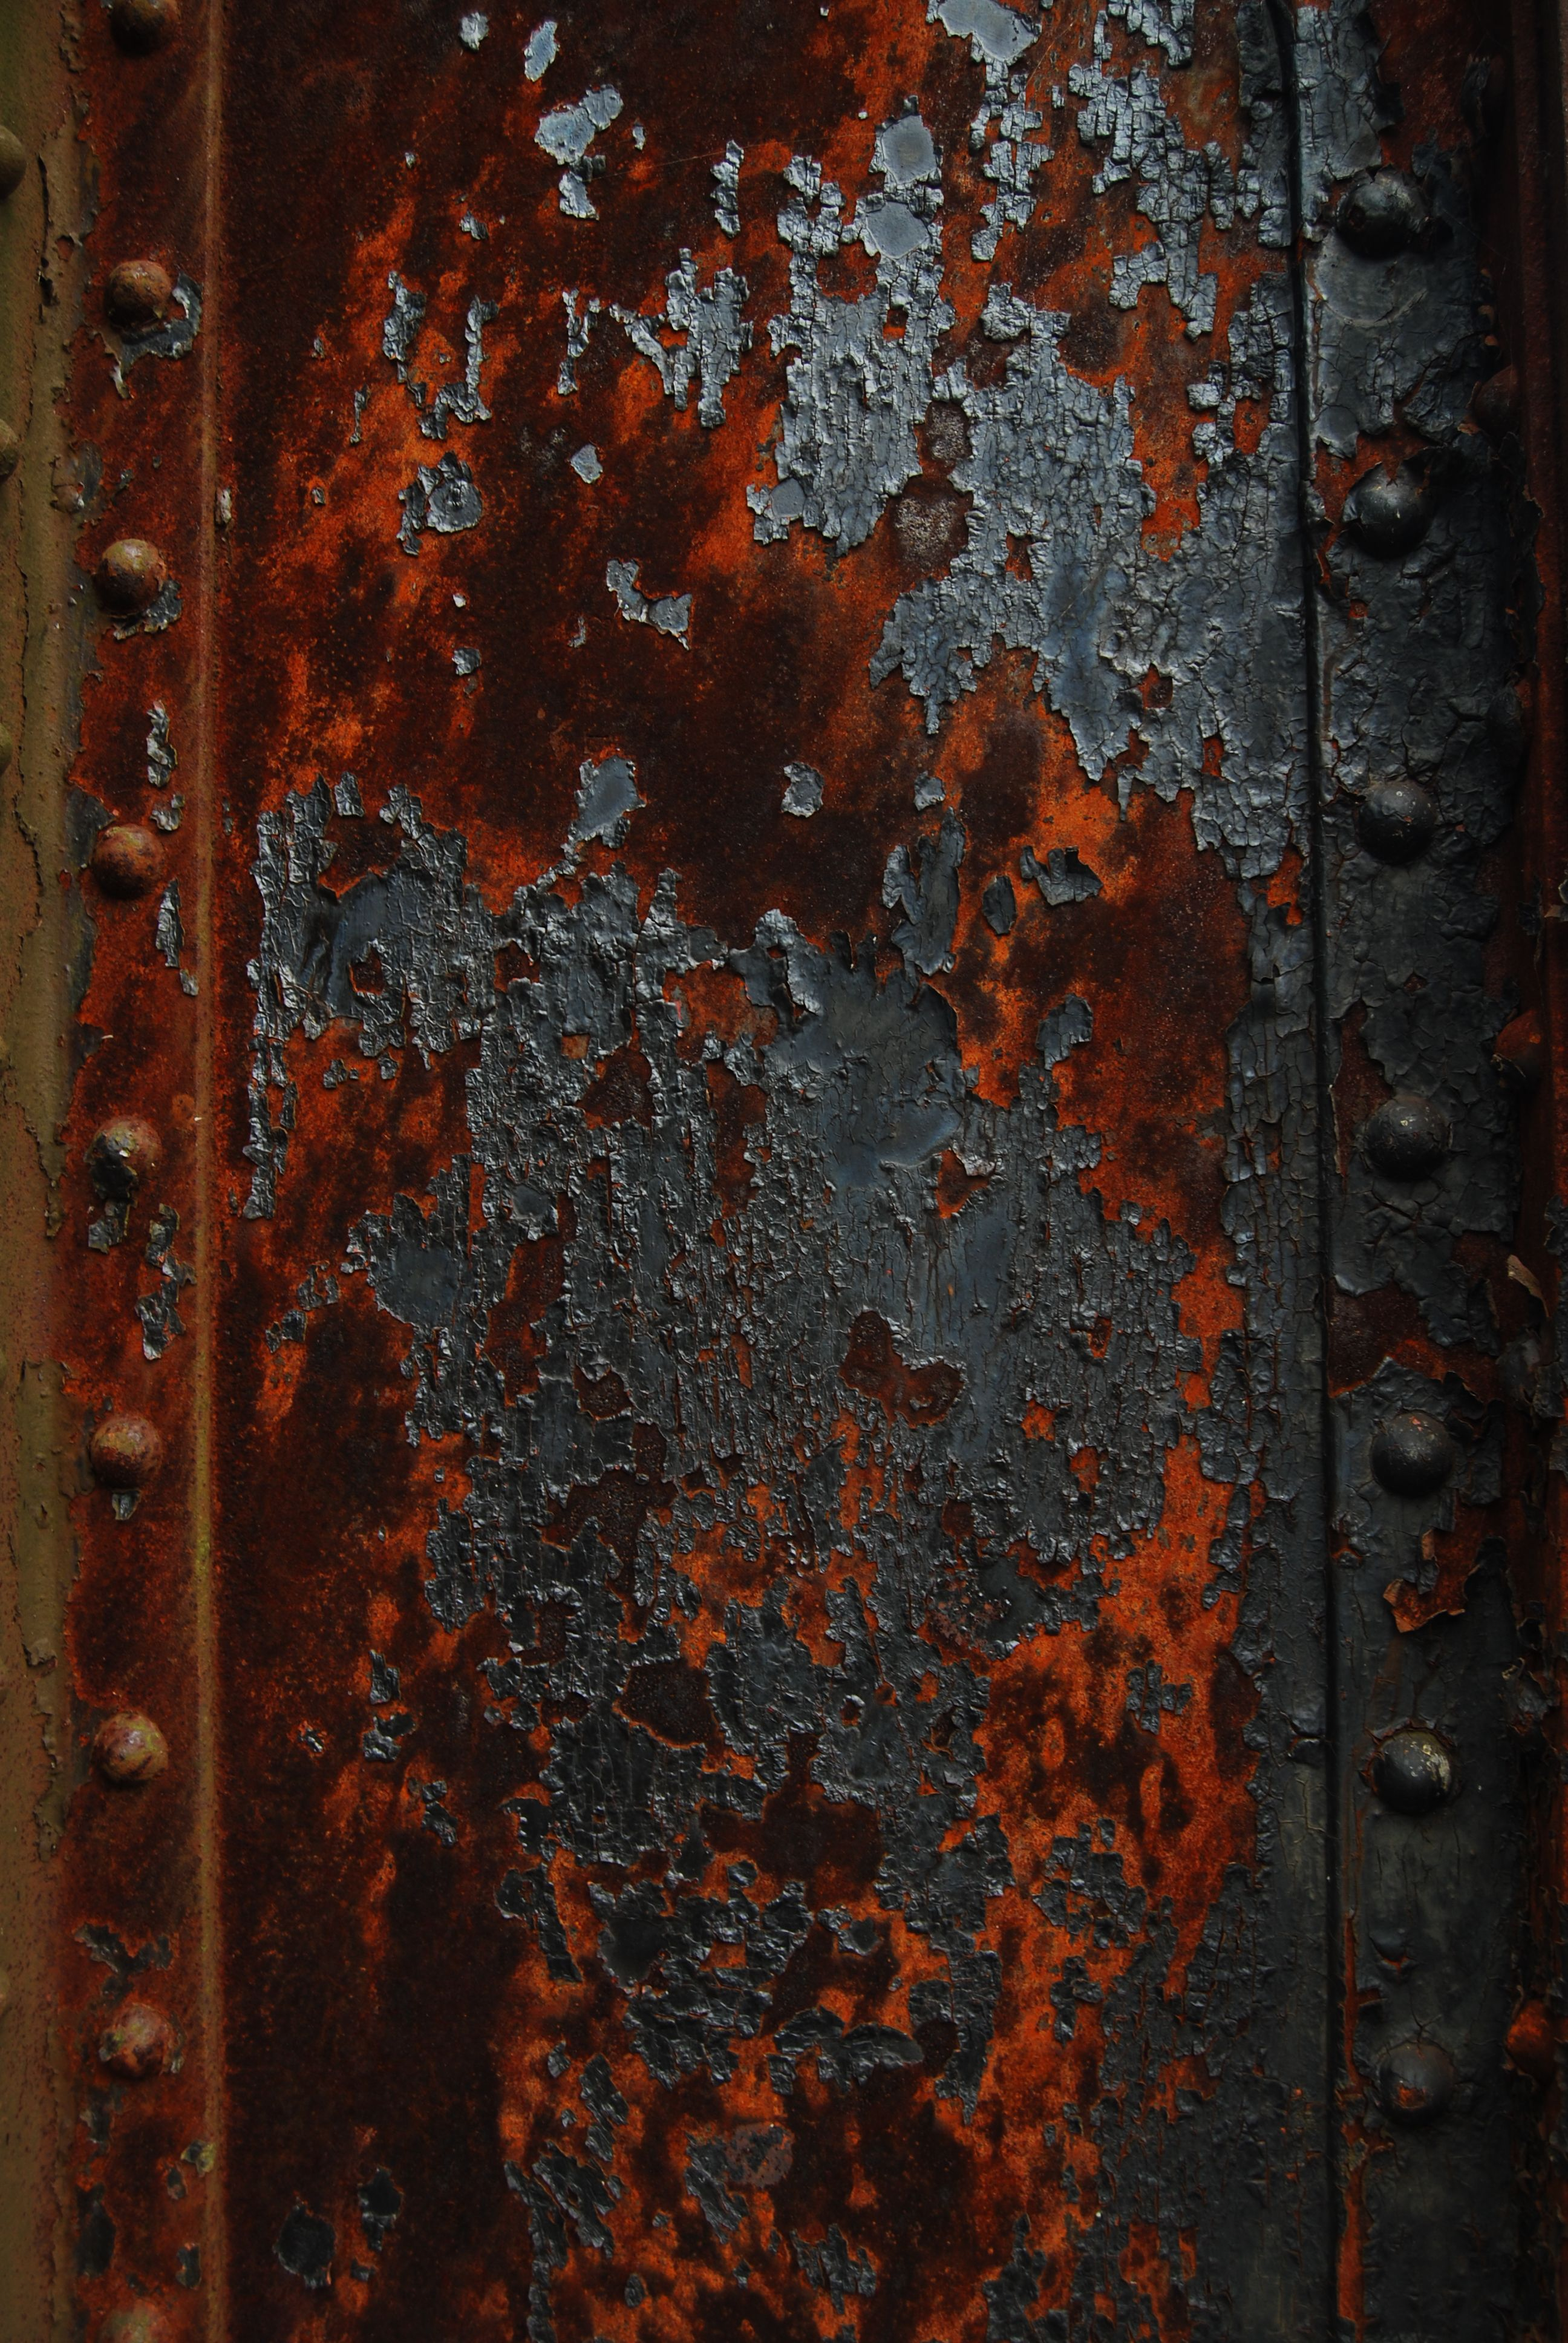 Free Photo Bloodred Rust Texture Blood Concrete Freetexturefrida Free Download Jooinn The most common blood texture material is metal. free photo bloodred rust texture